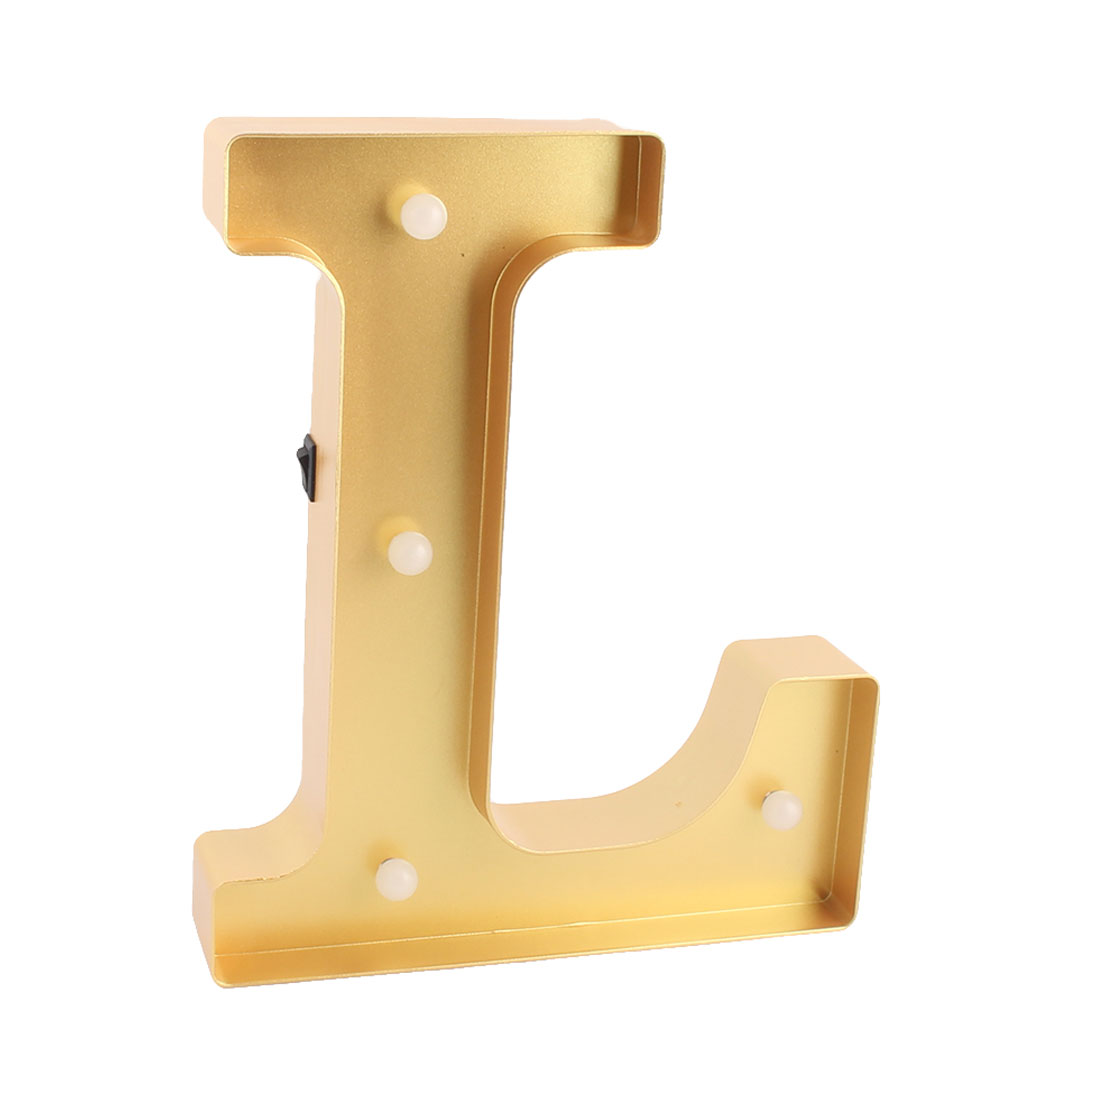 Restaurant Plastic Decor English L Letter Alphabet Word Free DIY LED Light Gold Tone